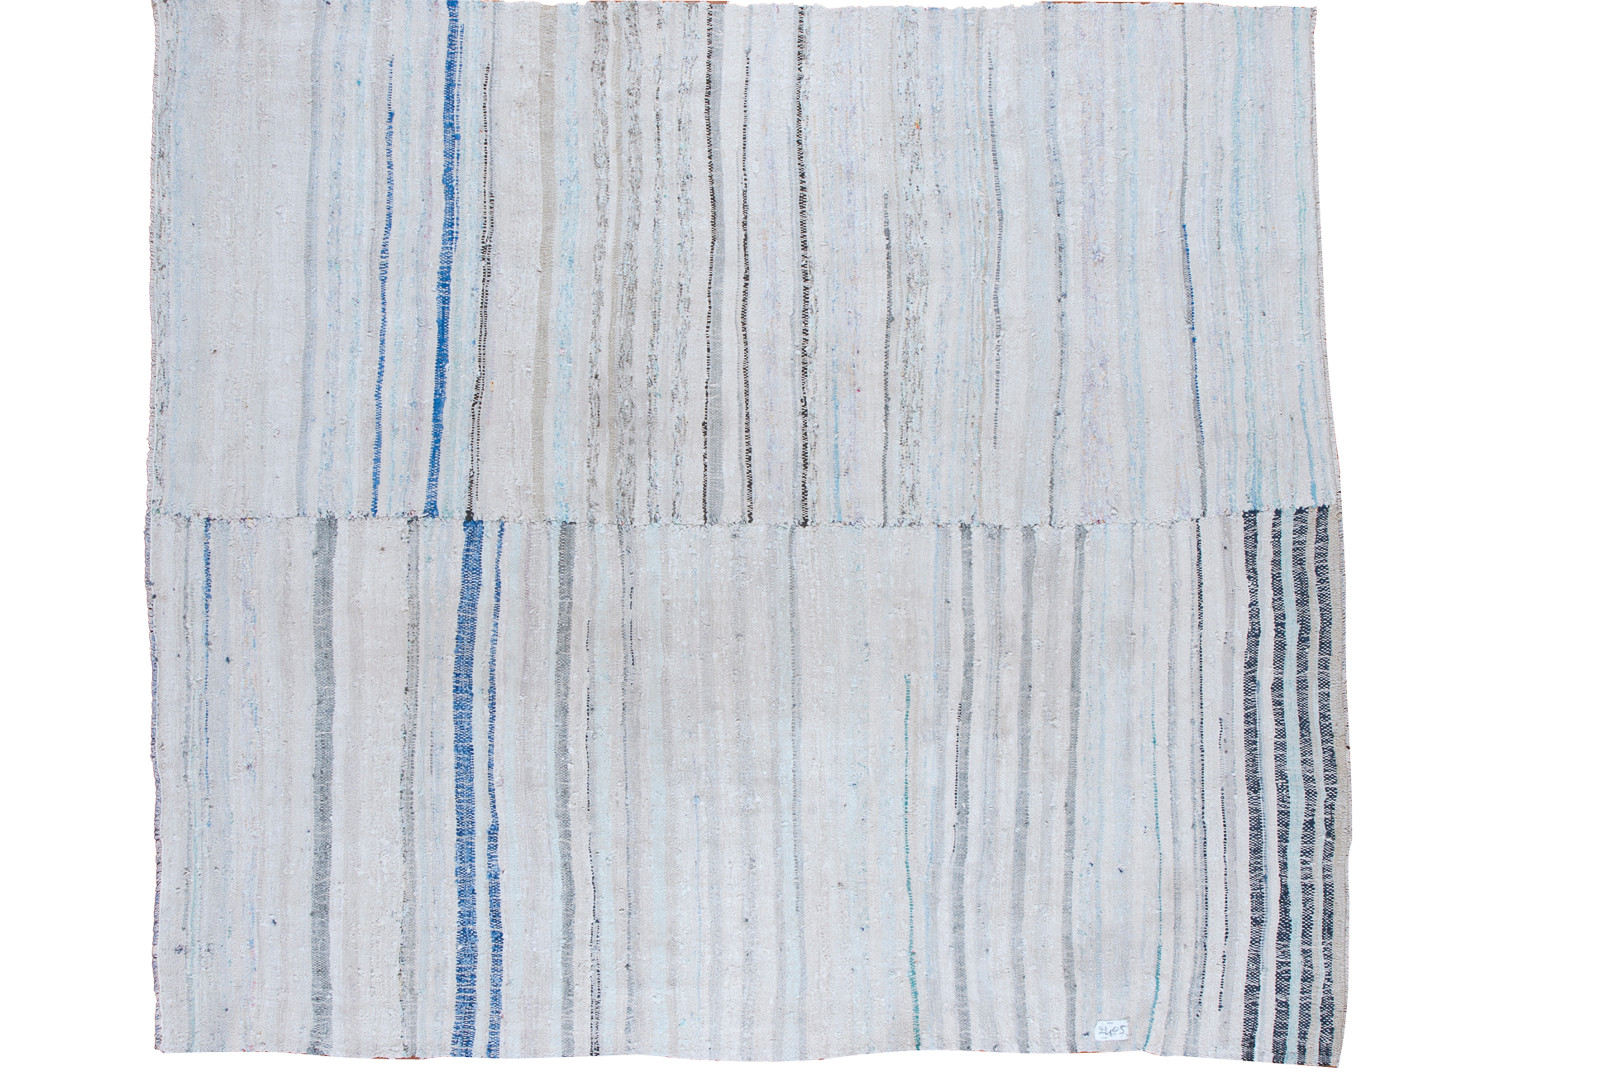 Cheap Area Rugs 9x12 | Square Rugs 7x7 | Lowes Carpet